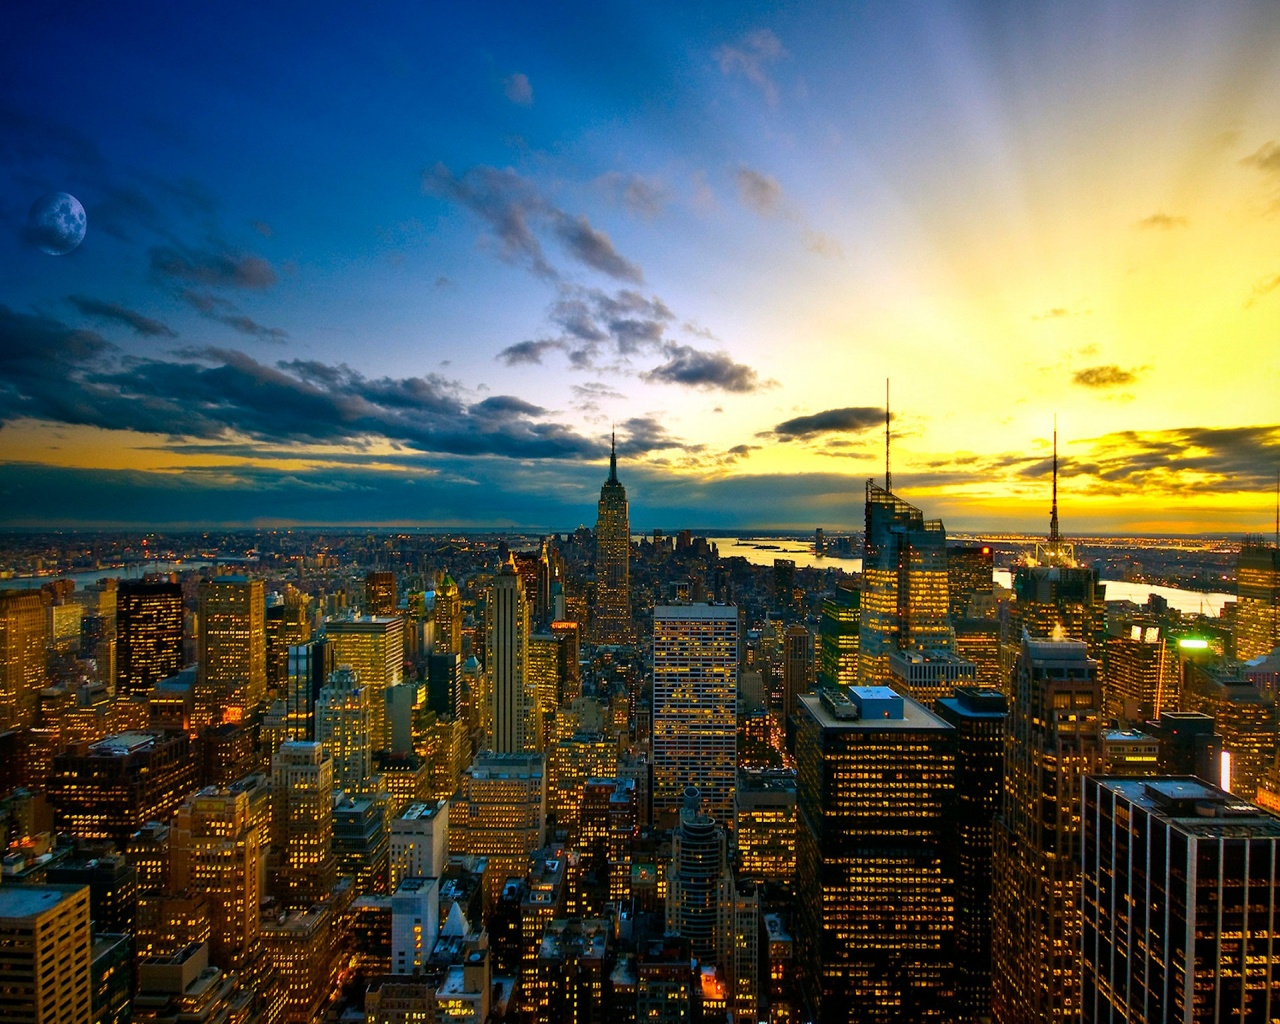 HD Wallpepars: New York City United States Wallpapers